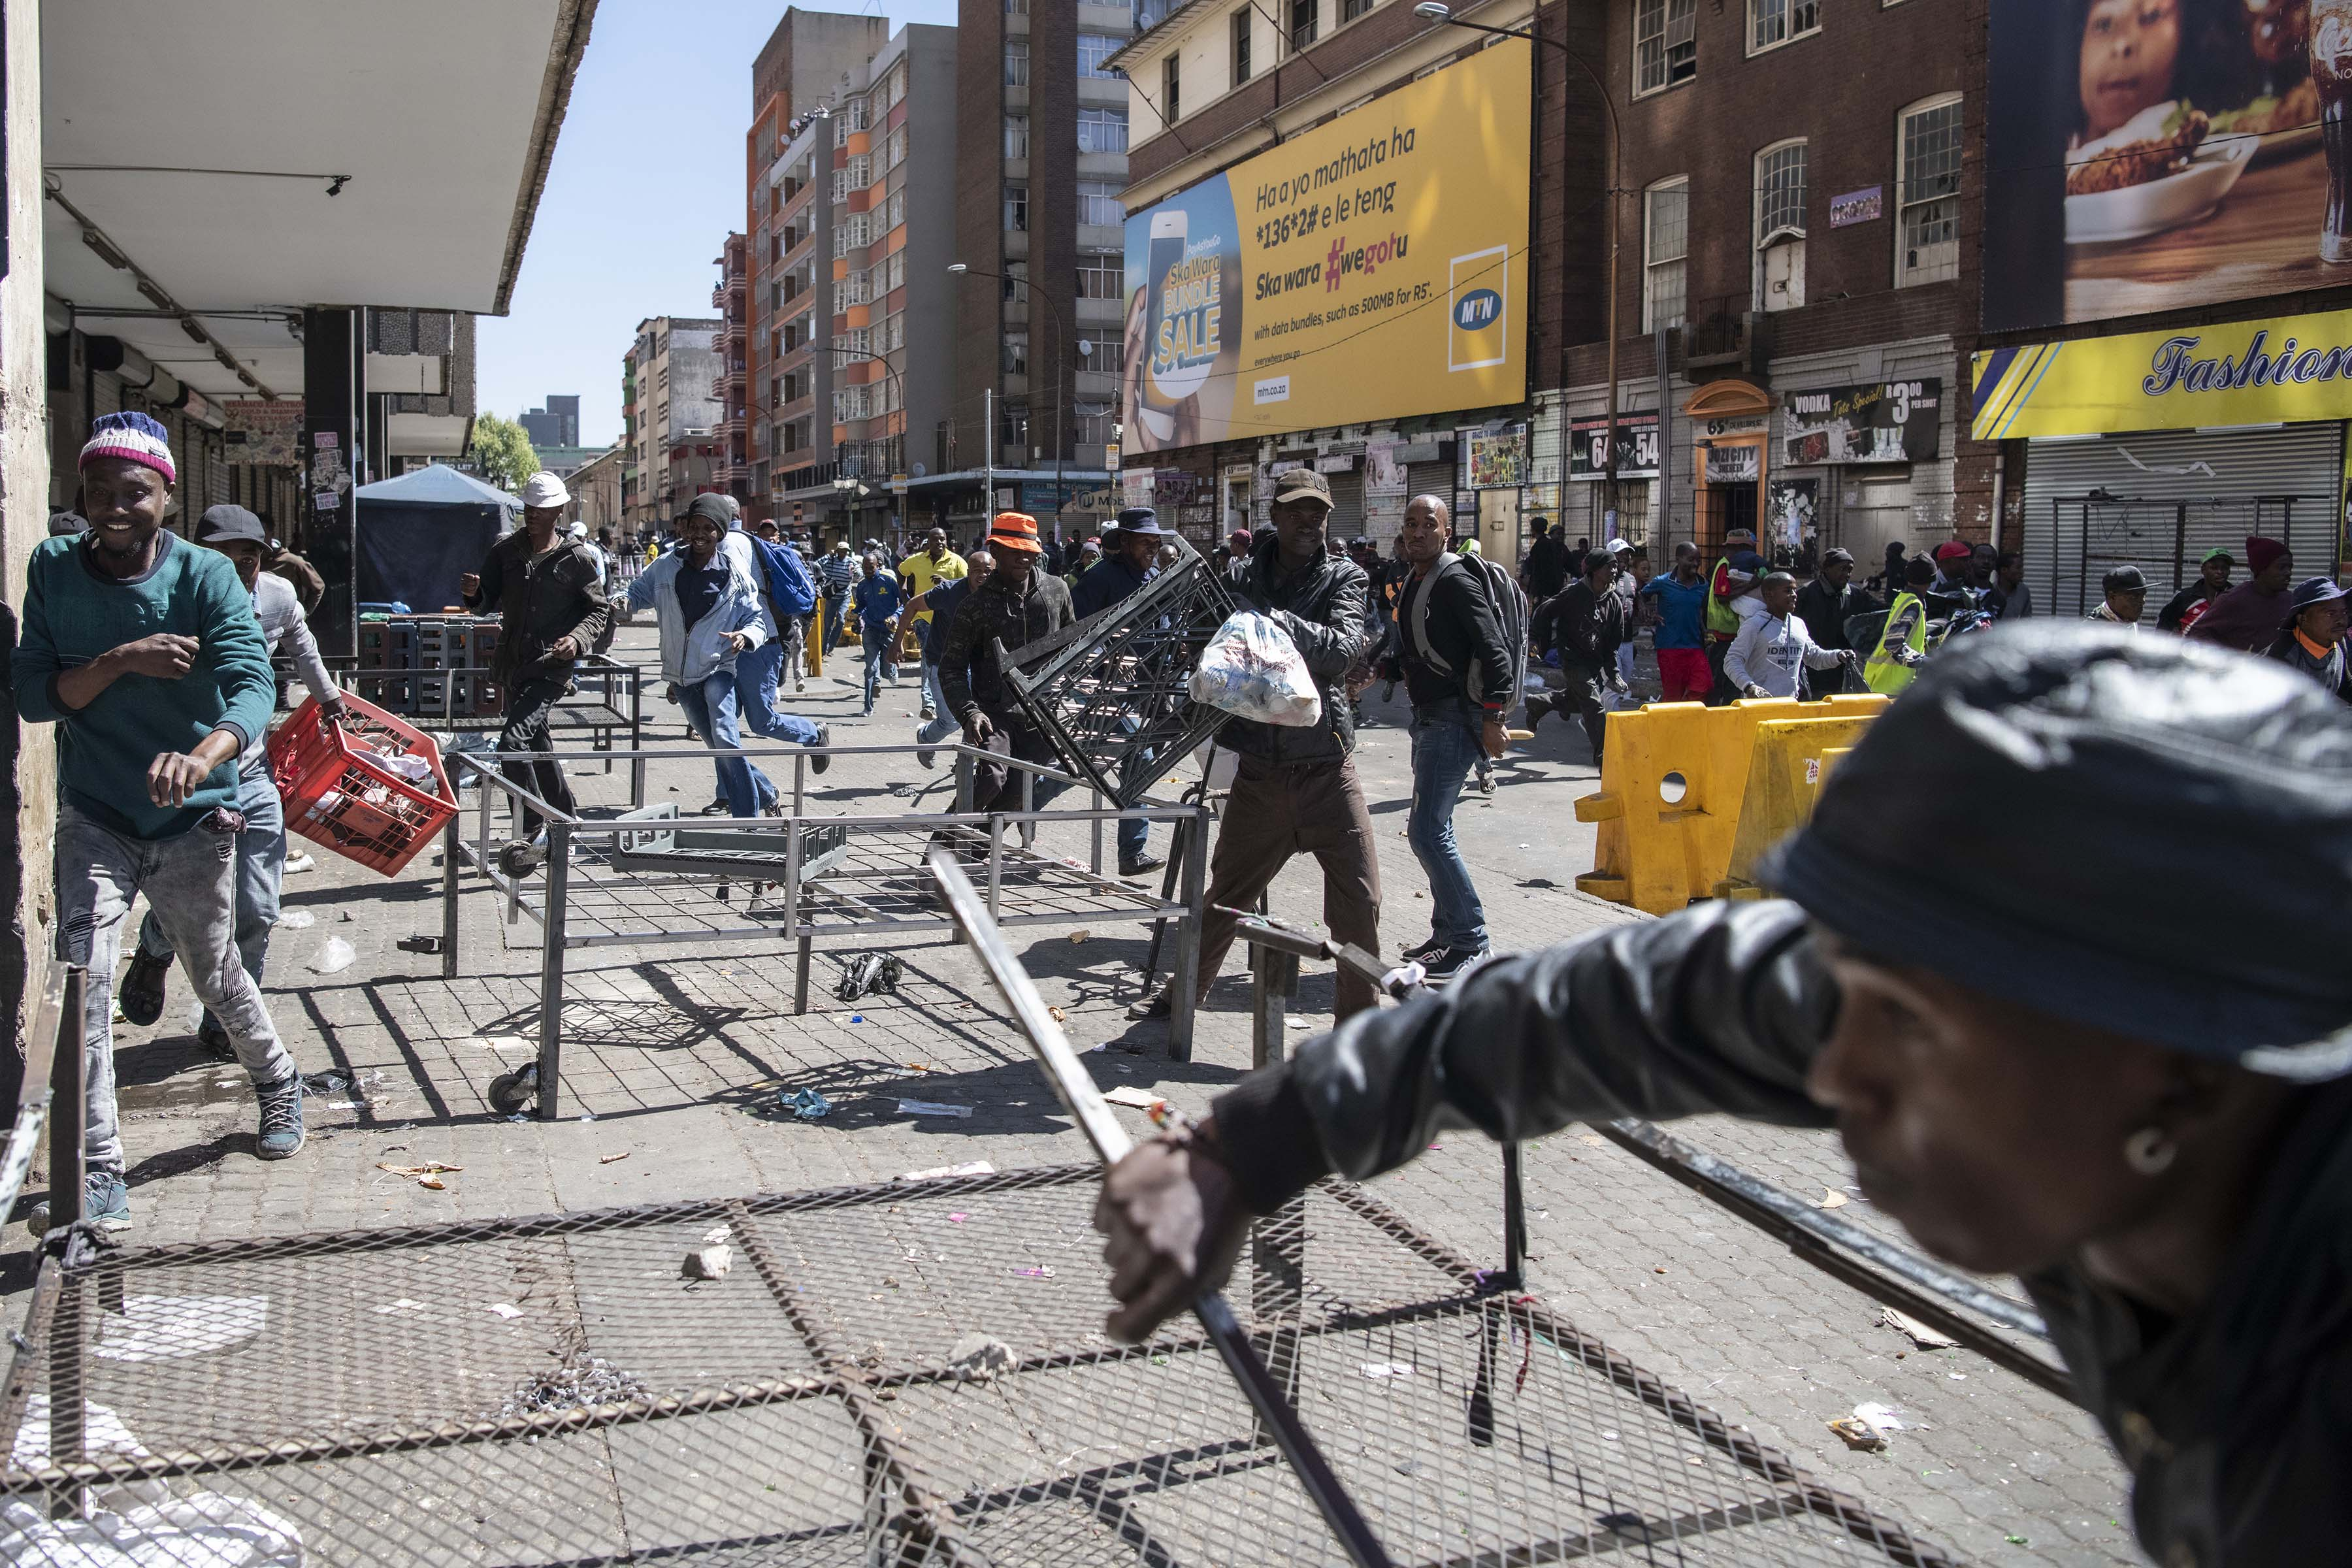 2 September 2019: Chaotic scenes near the Noord taxi rank, where the mob tried to loot foreign-owned businesses.